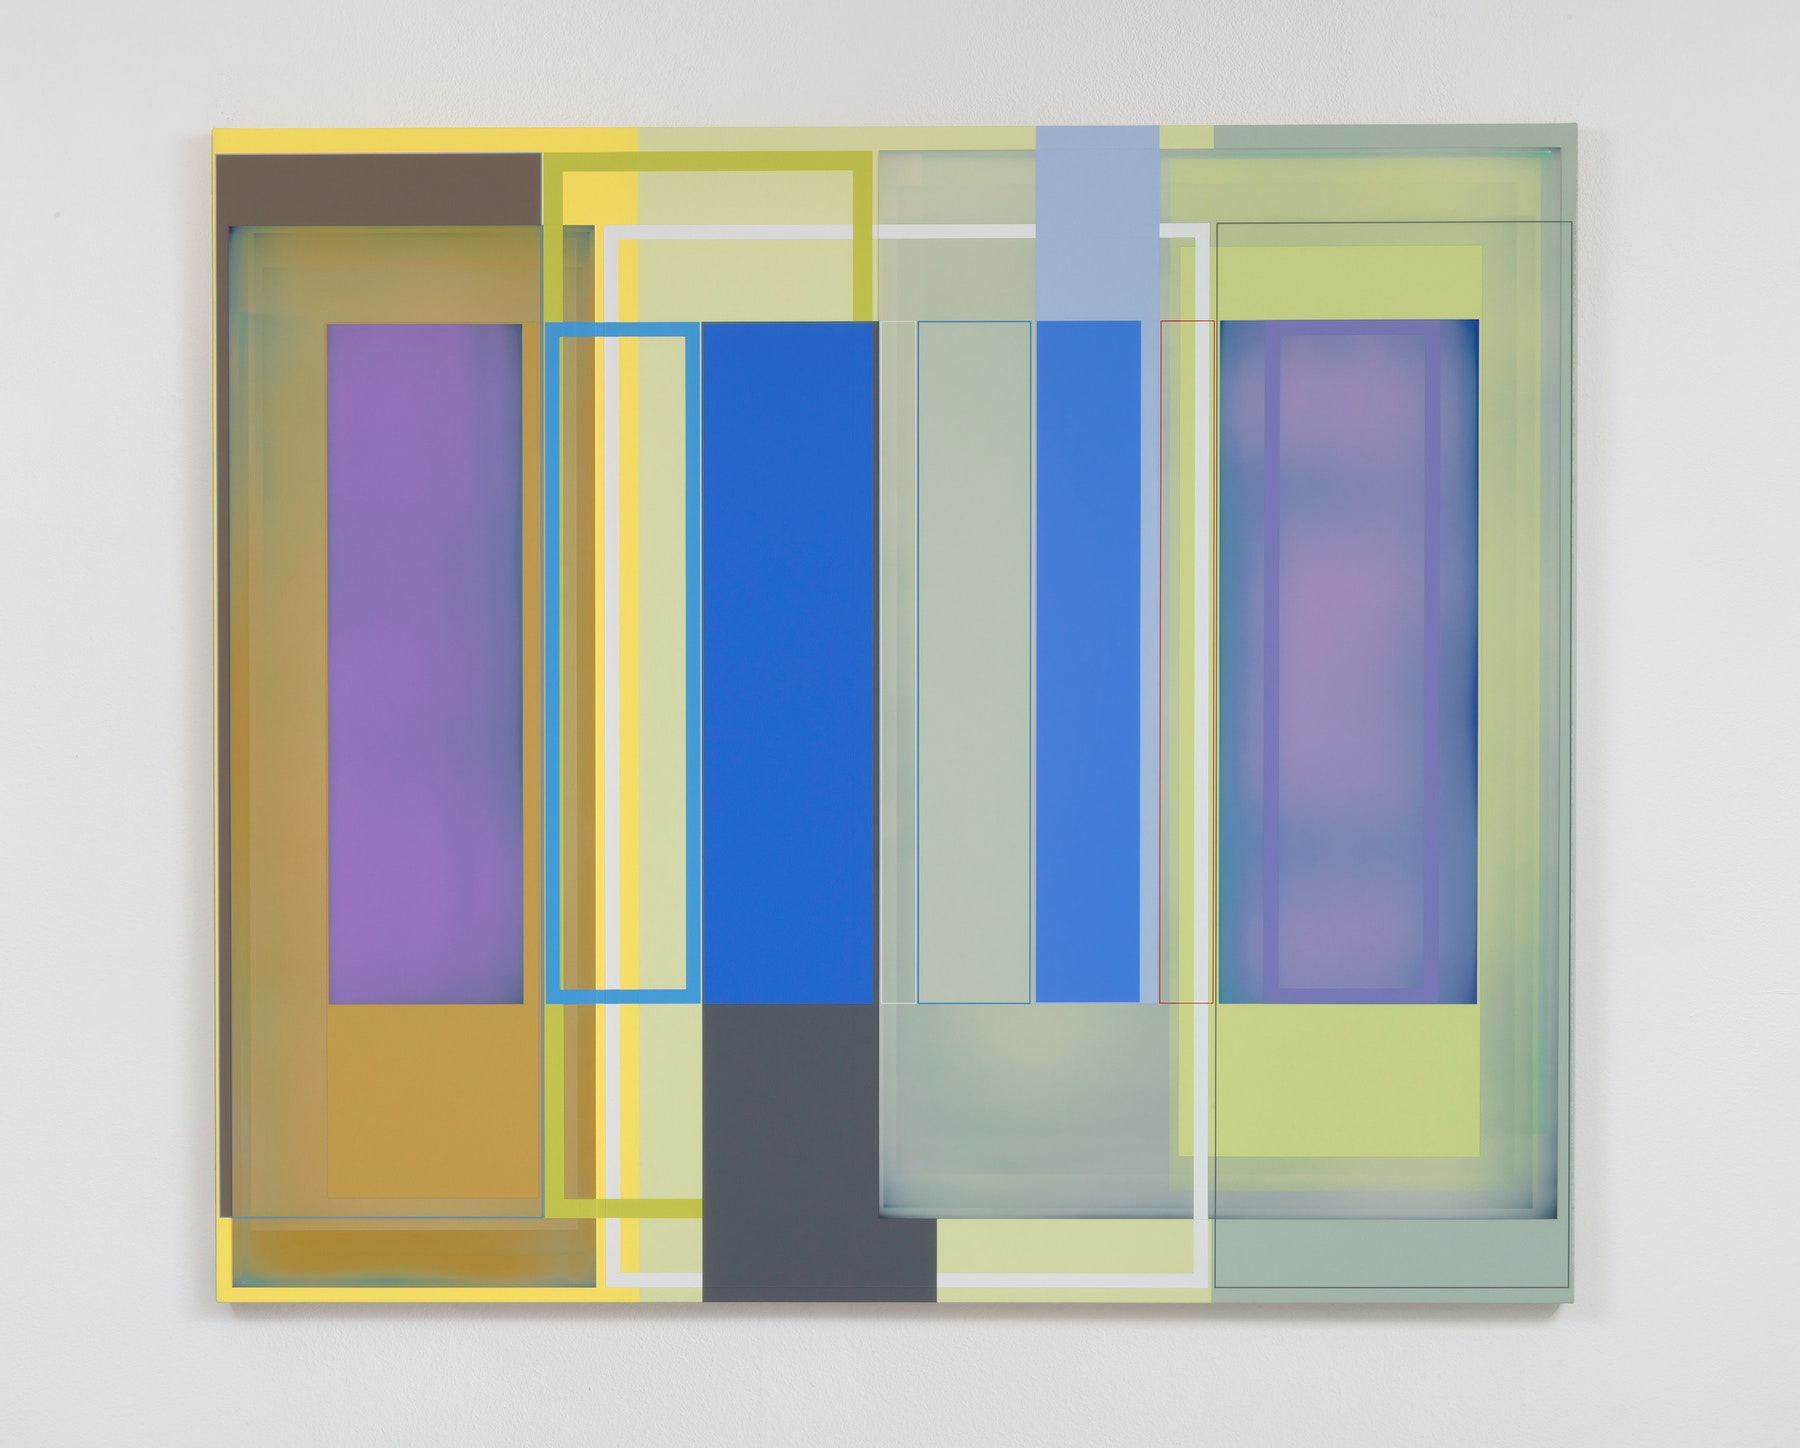 """Patrick Wilson """"Memory Code,"""" 2020 Acrylic on canvas 57"""" x 66"""" [HxW] (144.78 x 167.64 cm) Inventory #WIL570 Courtesy of the artist and Vielmetter Los Angeles Photo credit: Robert Wedemeyer"""